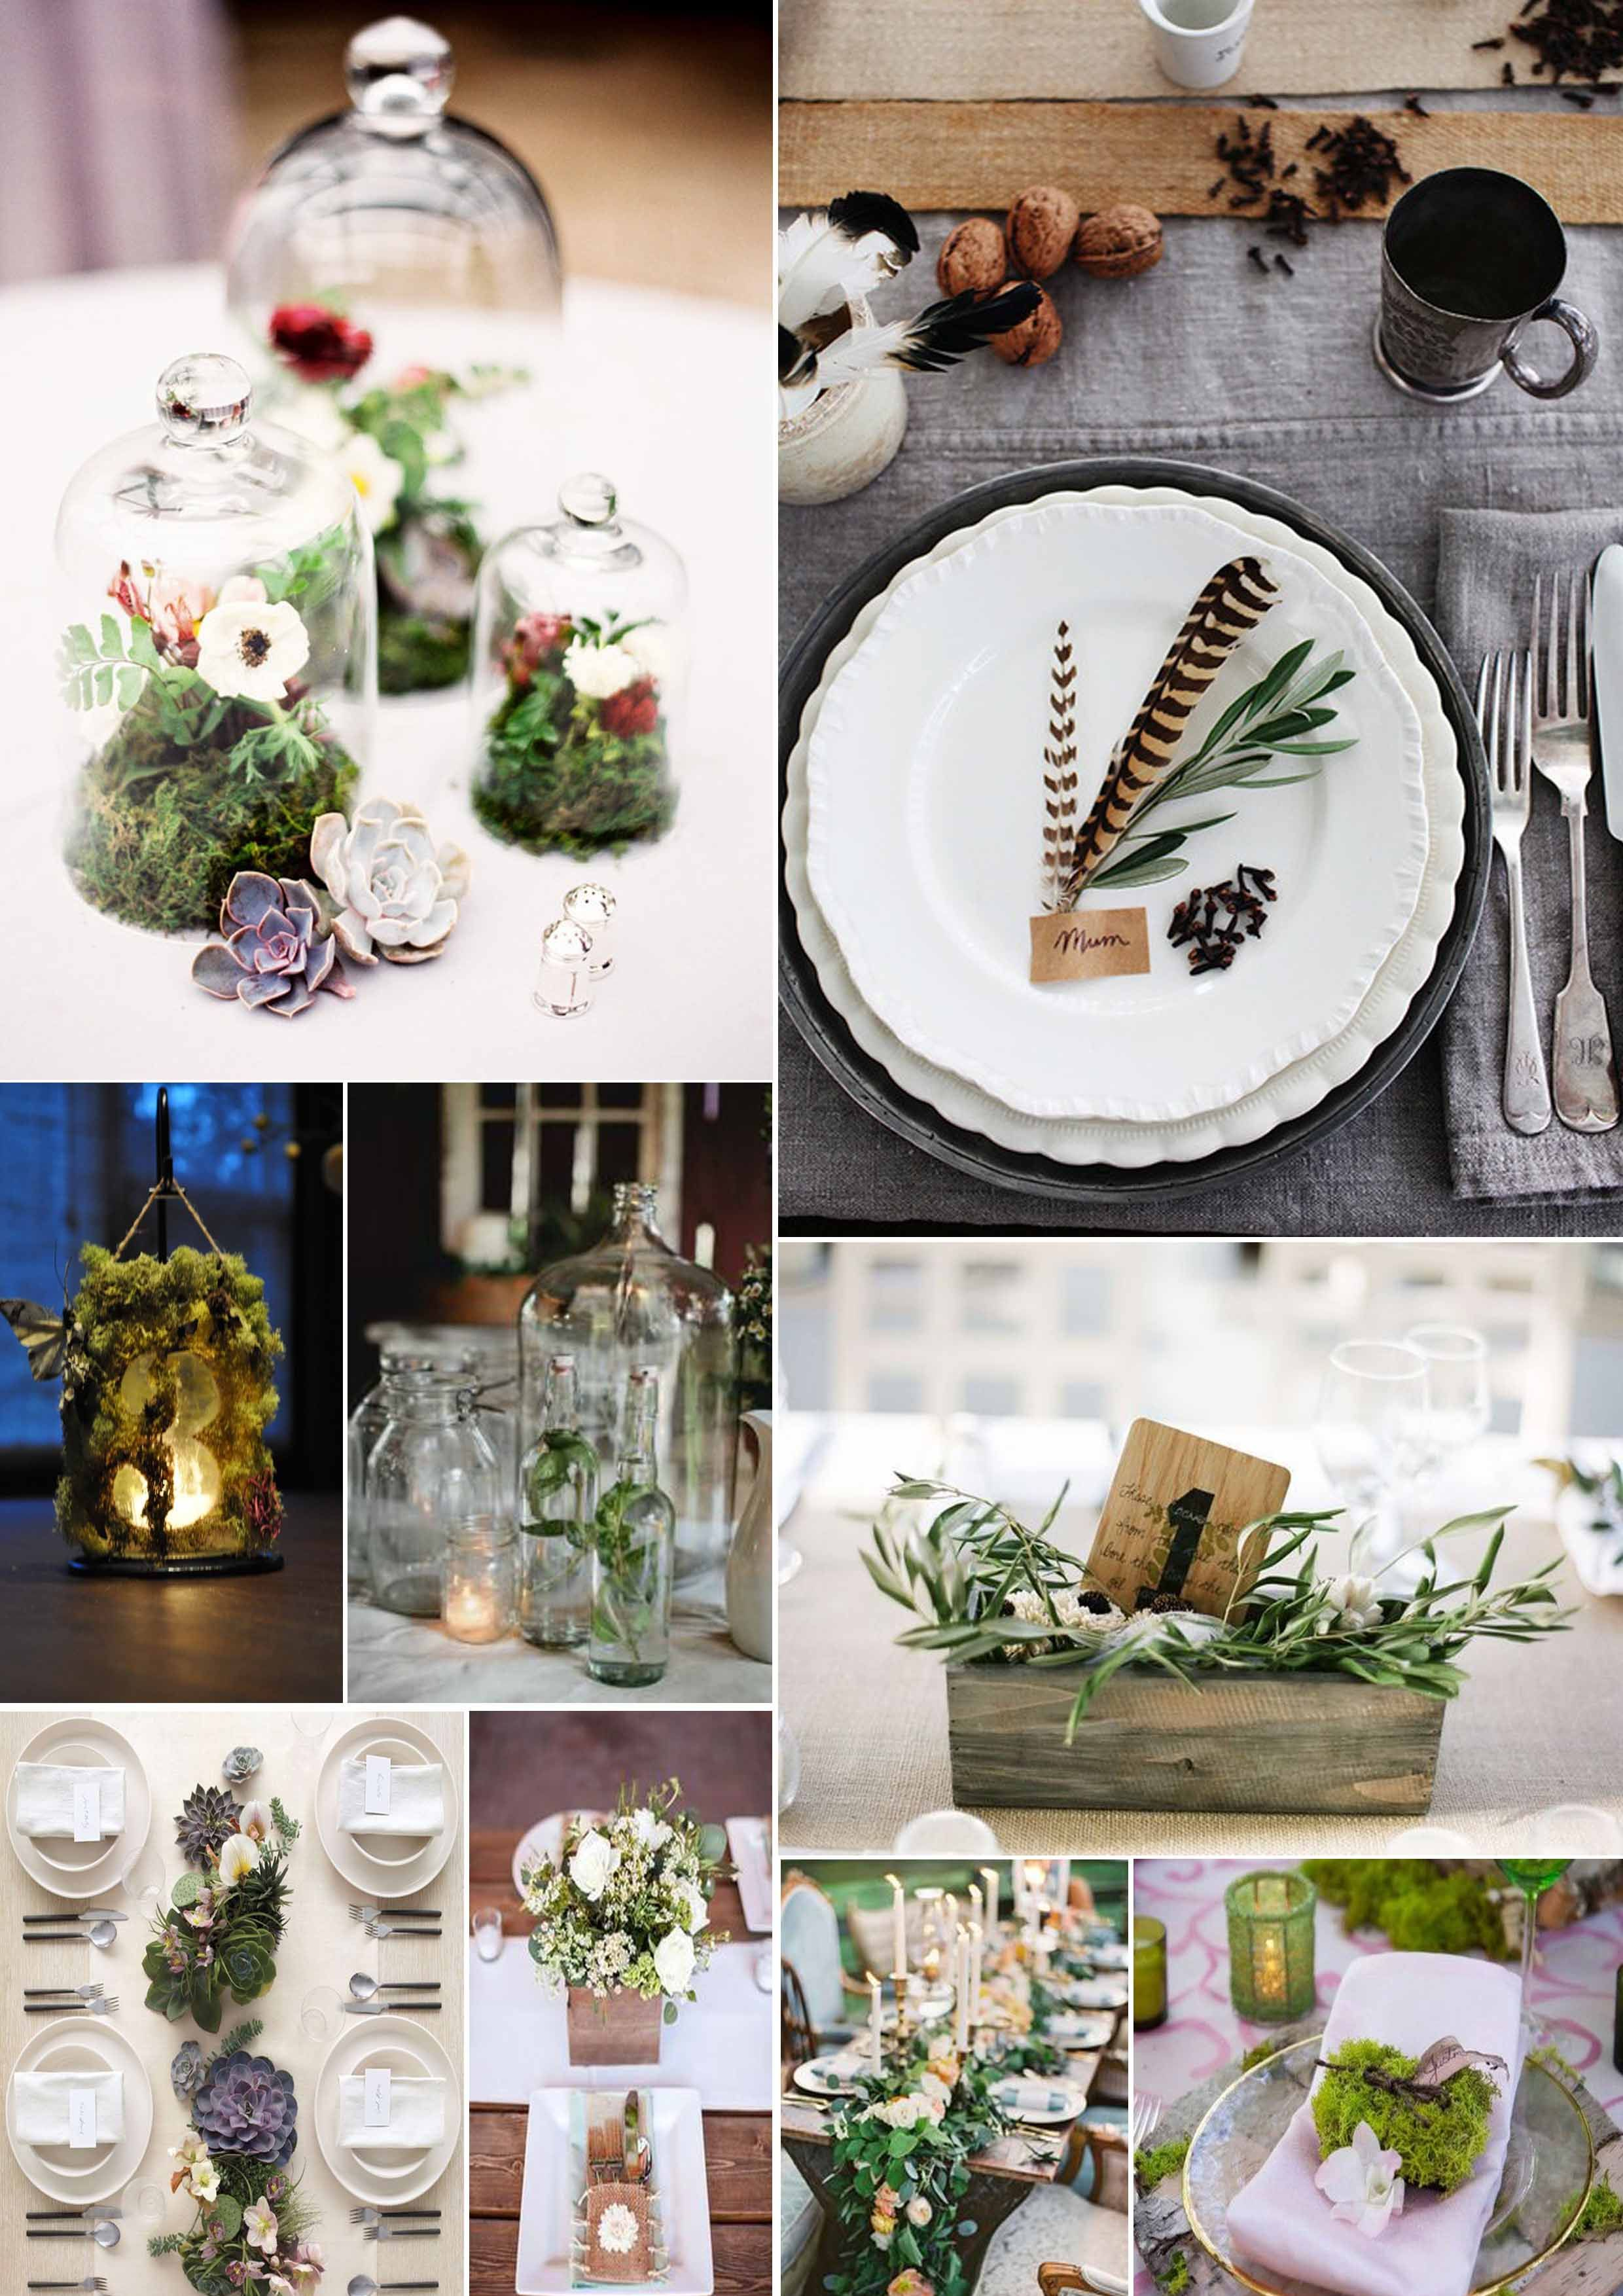 Woodlands and forest wedding decor ideas httpyesbabydaily woodlands and forest wedding decor ideas junglespirit Image collections